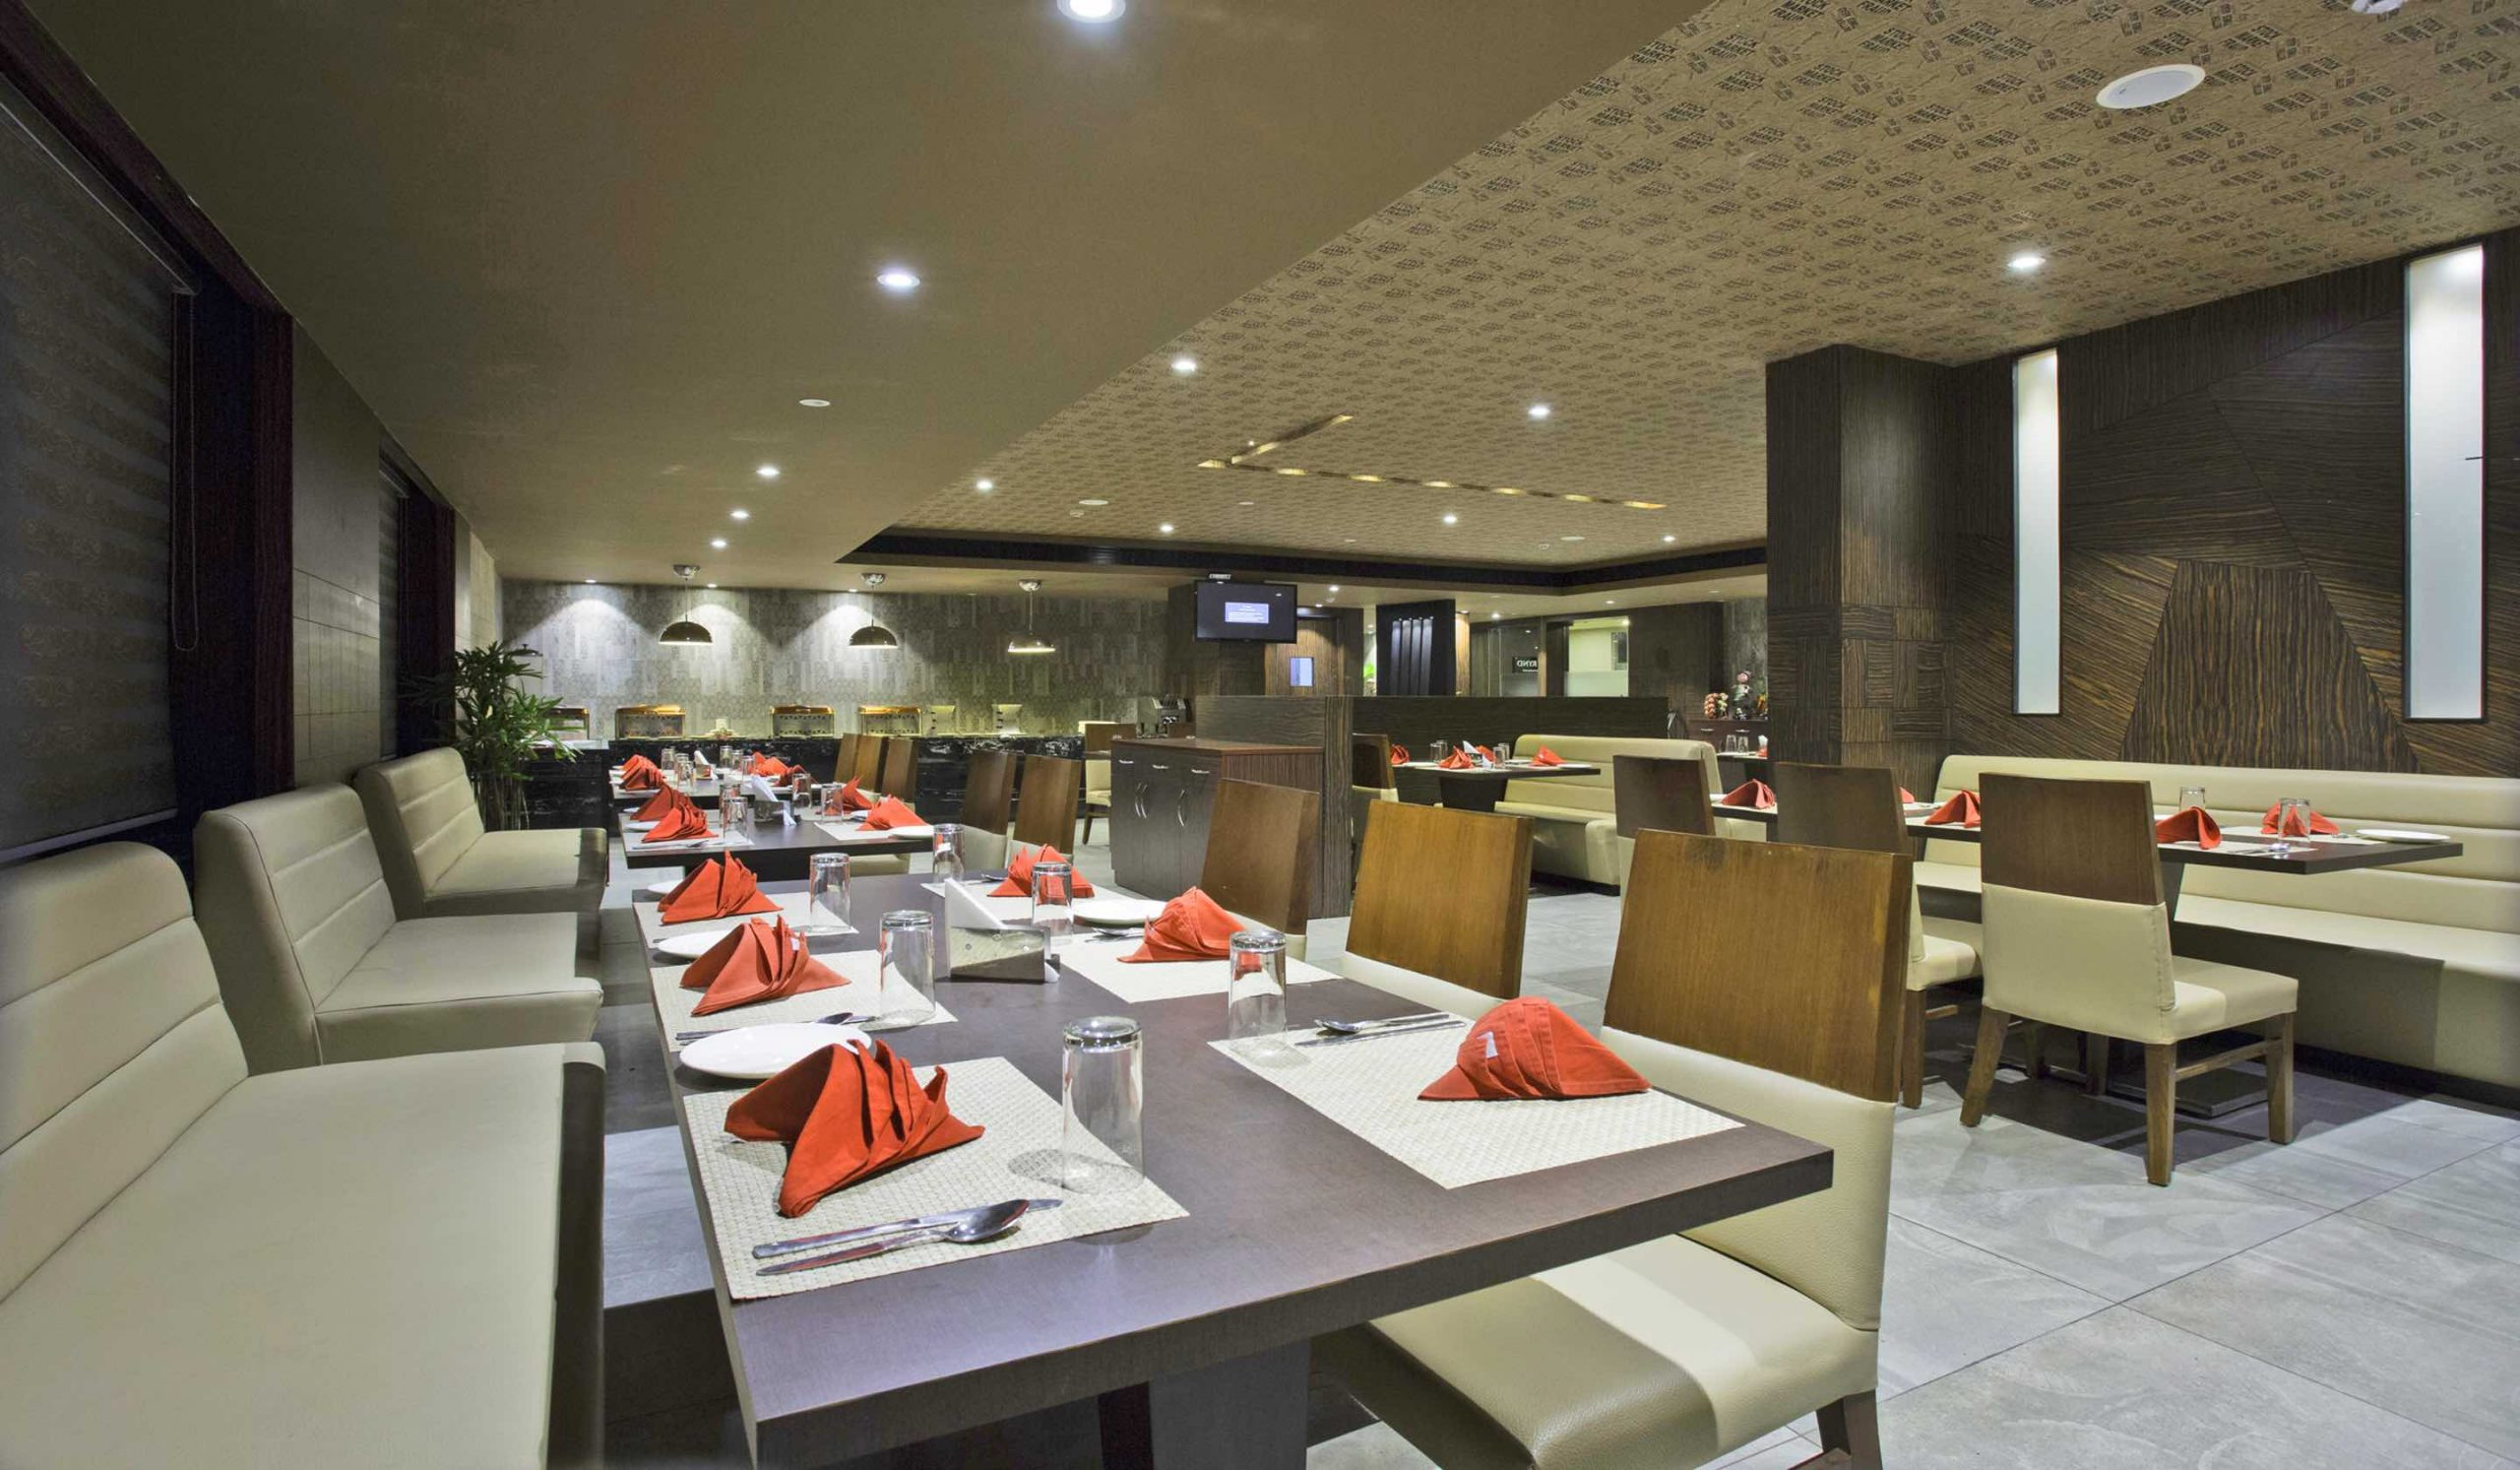 Restaurant In Siliguri That Every Food-Lover Must Try - Tamarynd Lounge And Restaurant